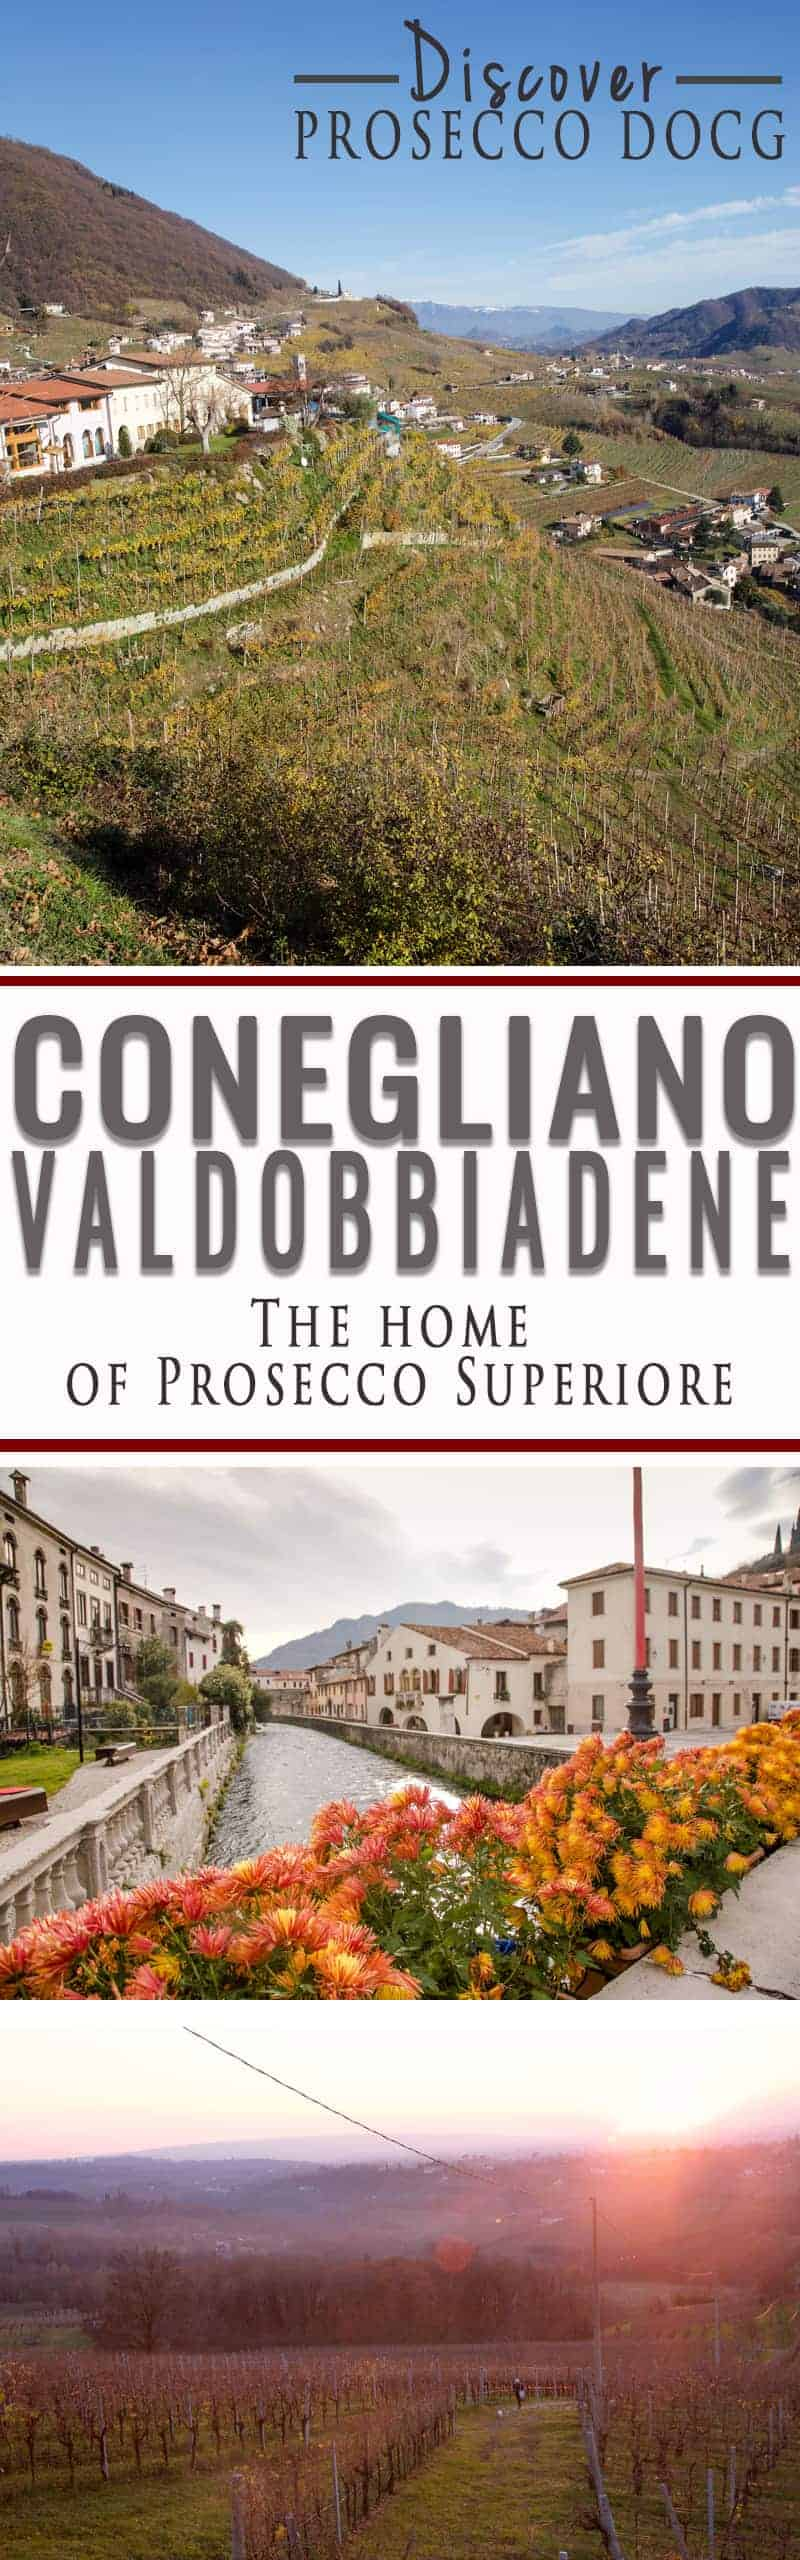 Images of wine travel in the Conegliano Valdobbiane wine region, home of Prosecco